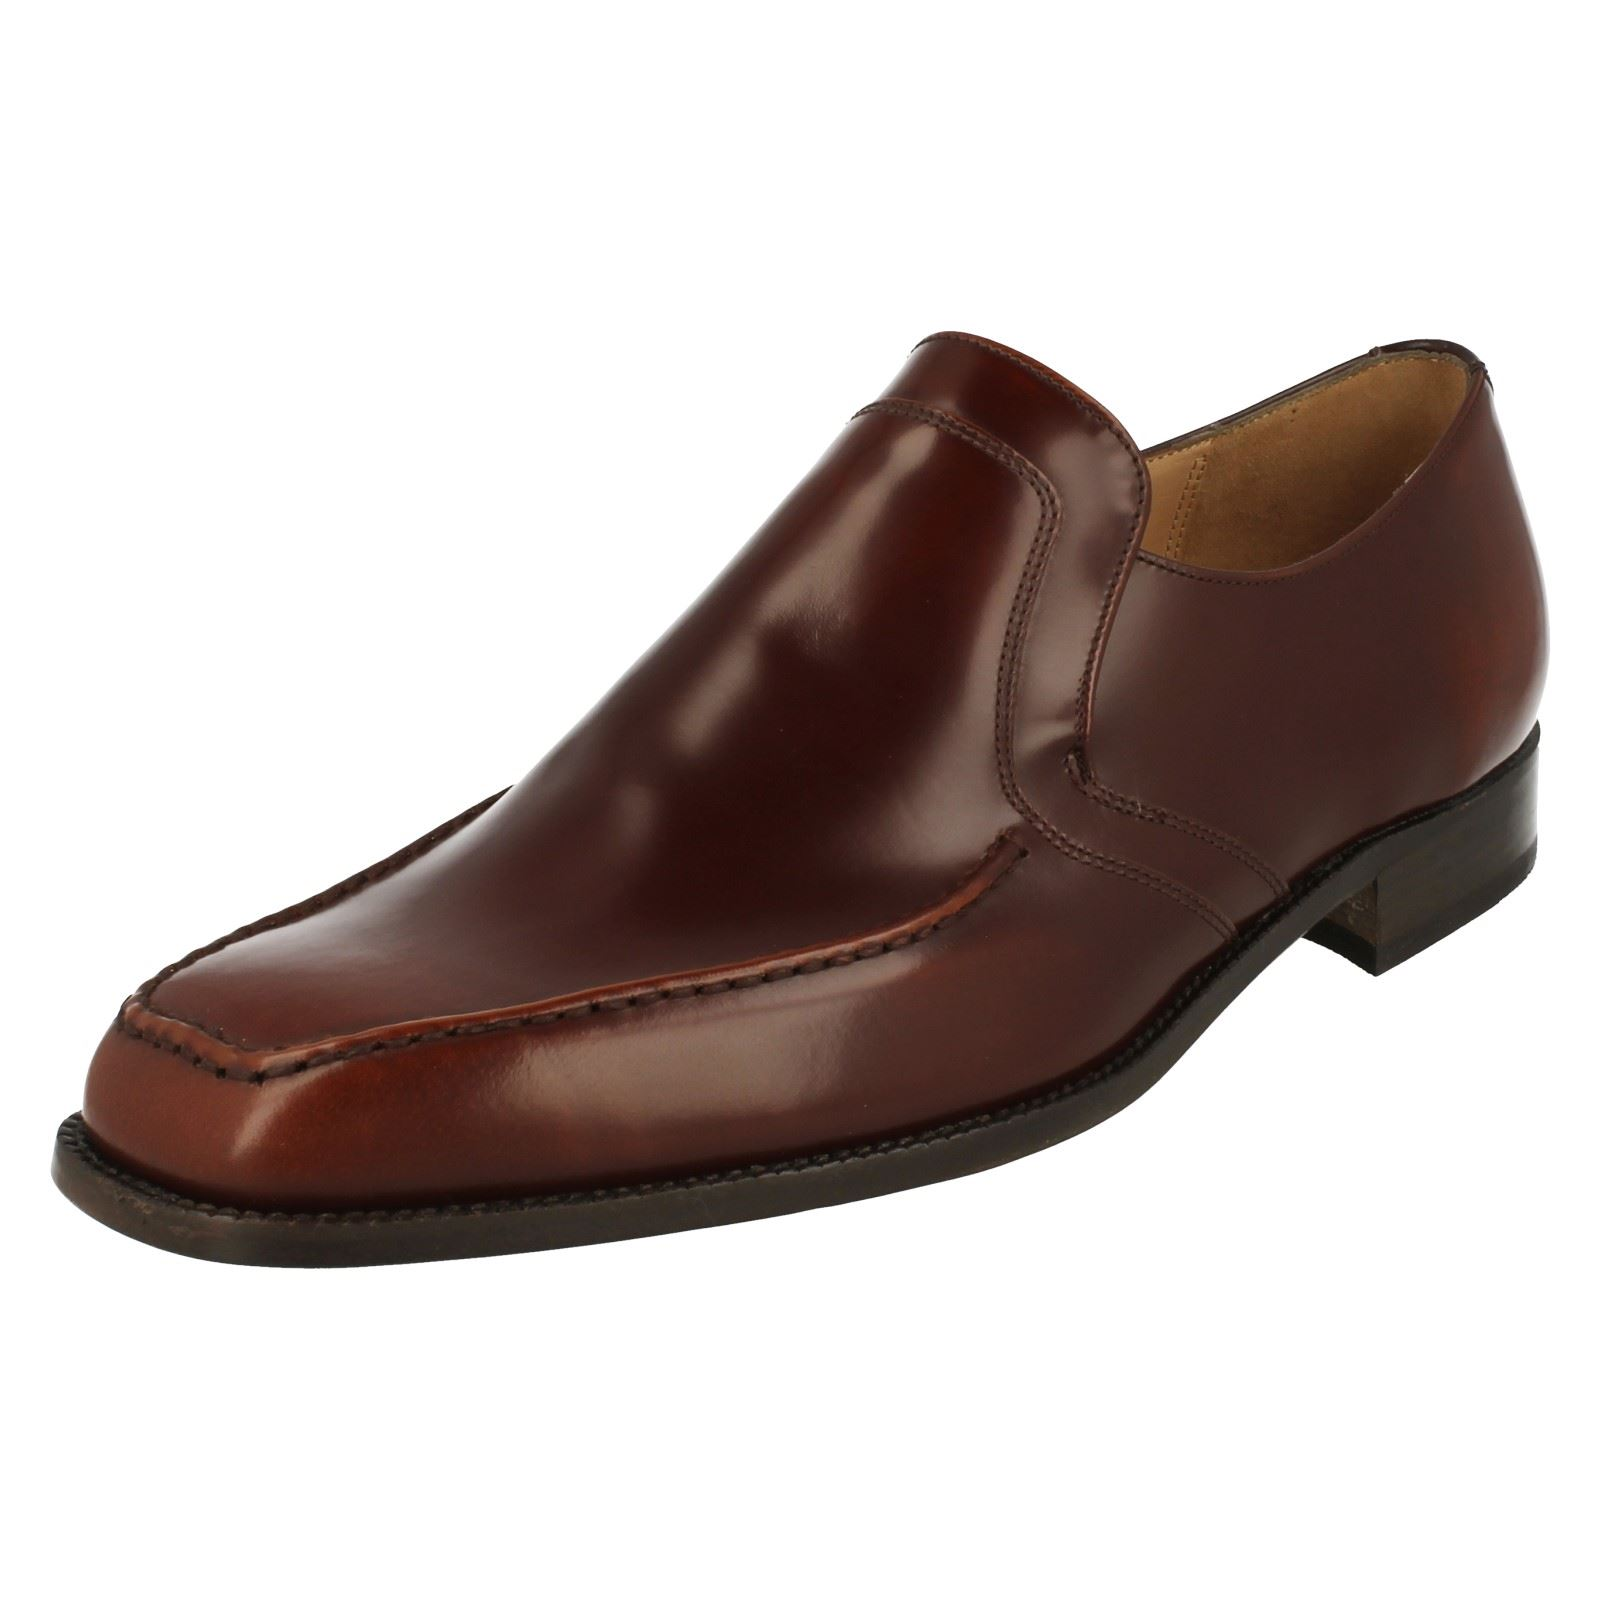 Mens Grenson Moccasin Styled Shoes Ripon